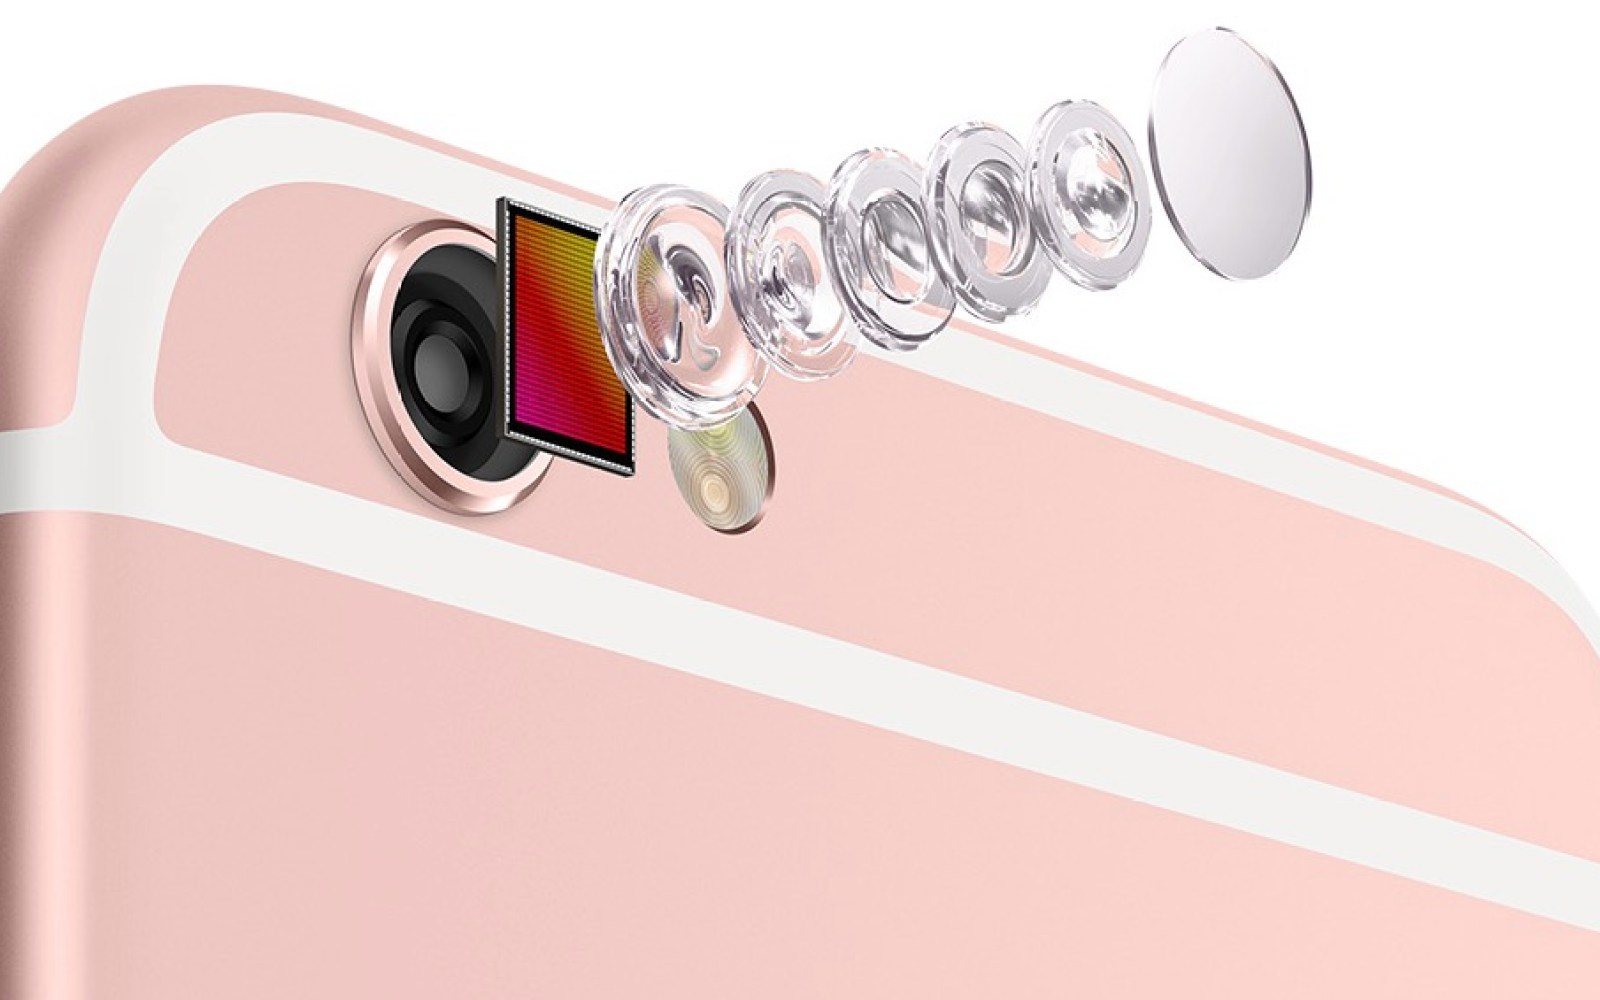 iPhone 6s + 6s Plus cameras come closer to high-end DSLRs, shine with stable 4K video